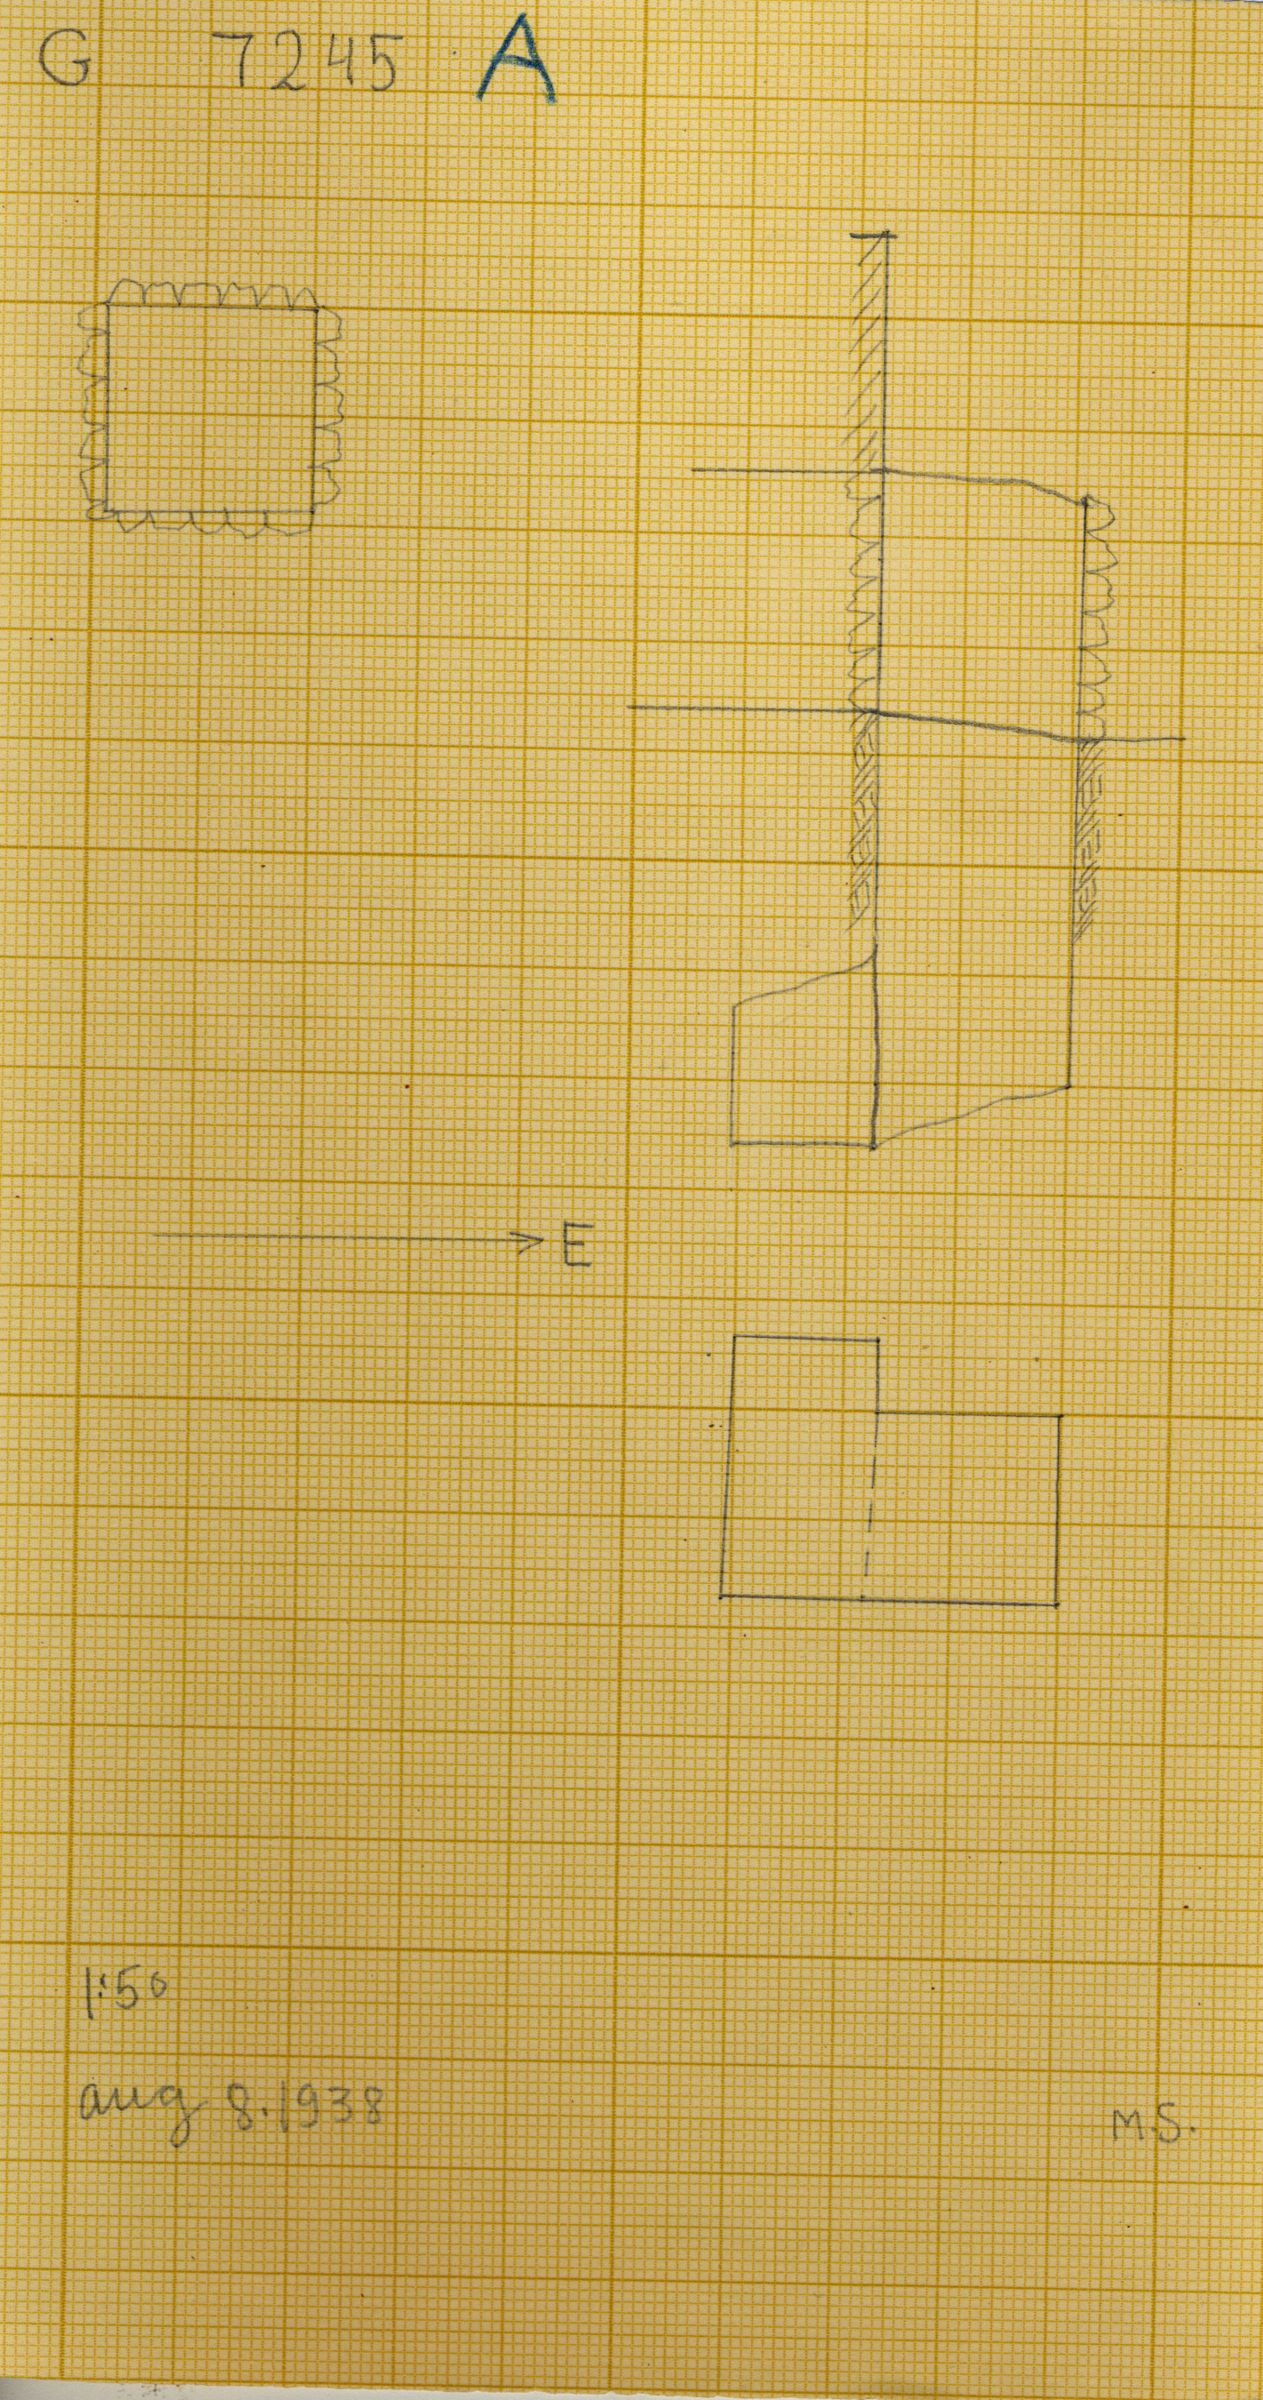 Maps and plans: G 7245, Shaft A